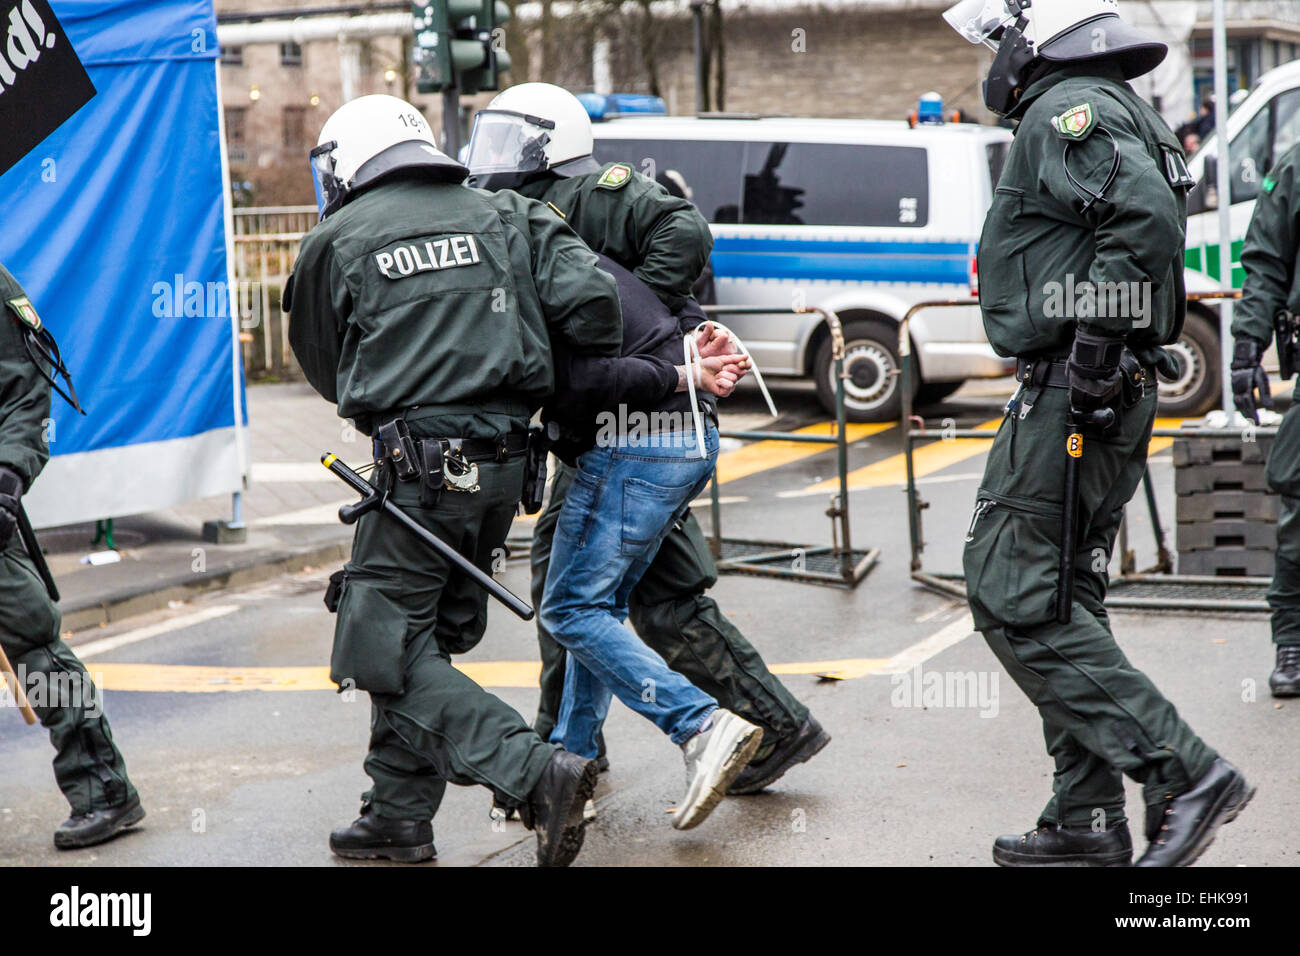 Demonstration of right wing PEGIDA organization, together with violent Hooligans, against a meeting of Islamic Salafist - Stock Image